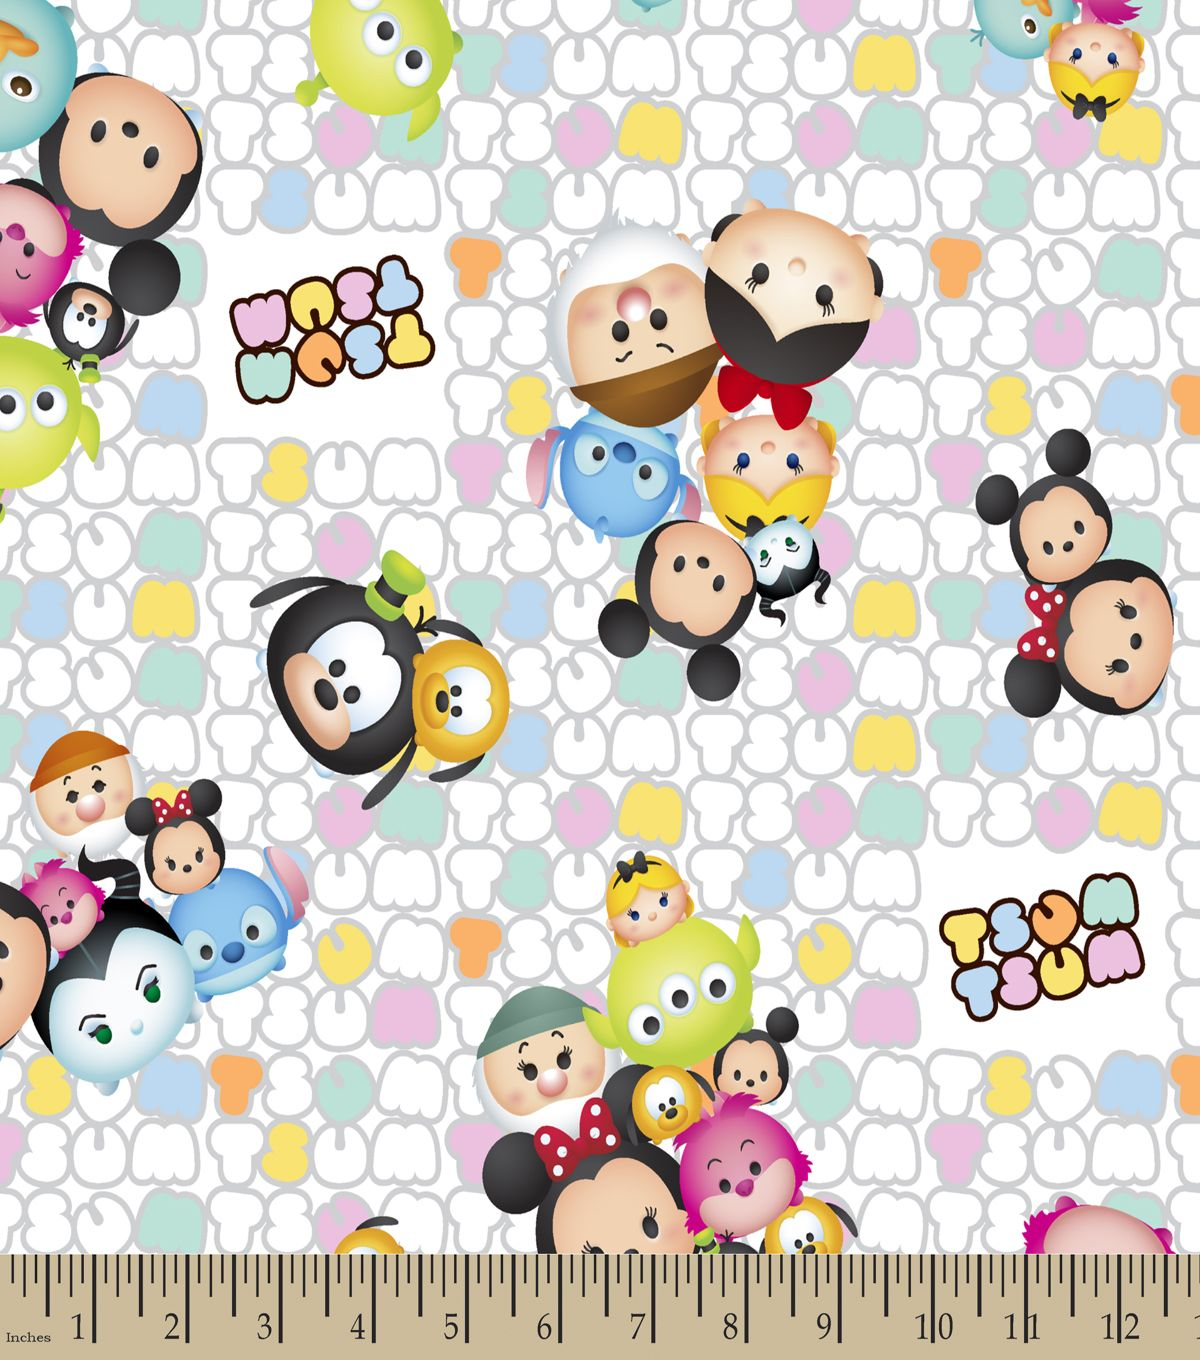 Tsum Tsum Patterned Print Fabric | Fabric Finds with JOANN ...